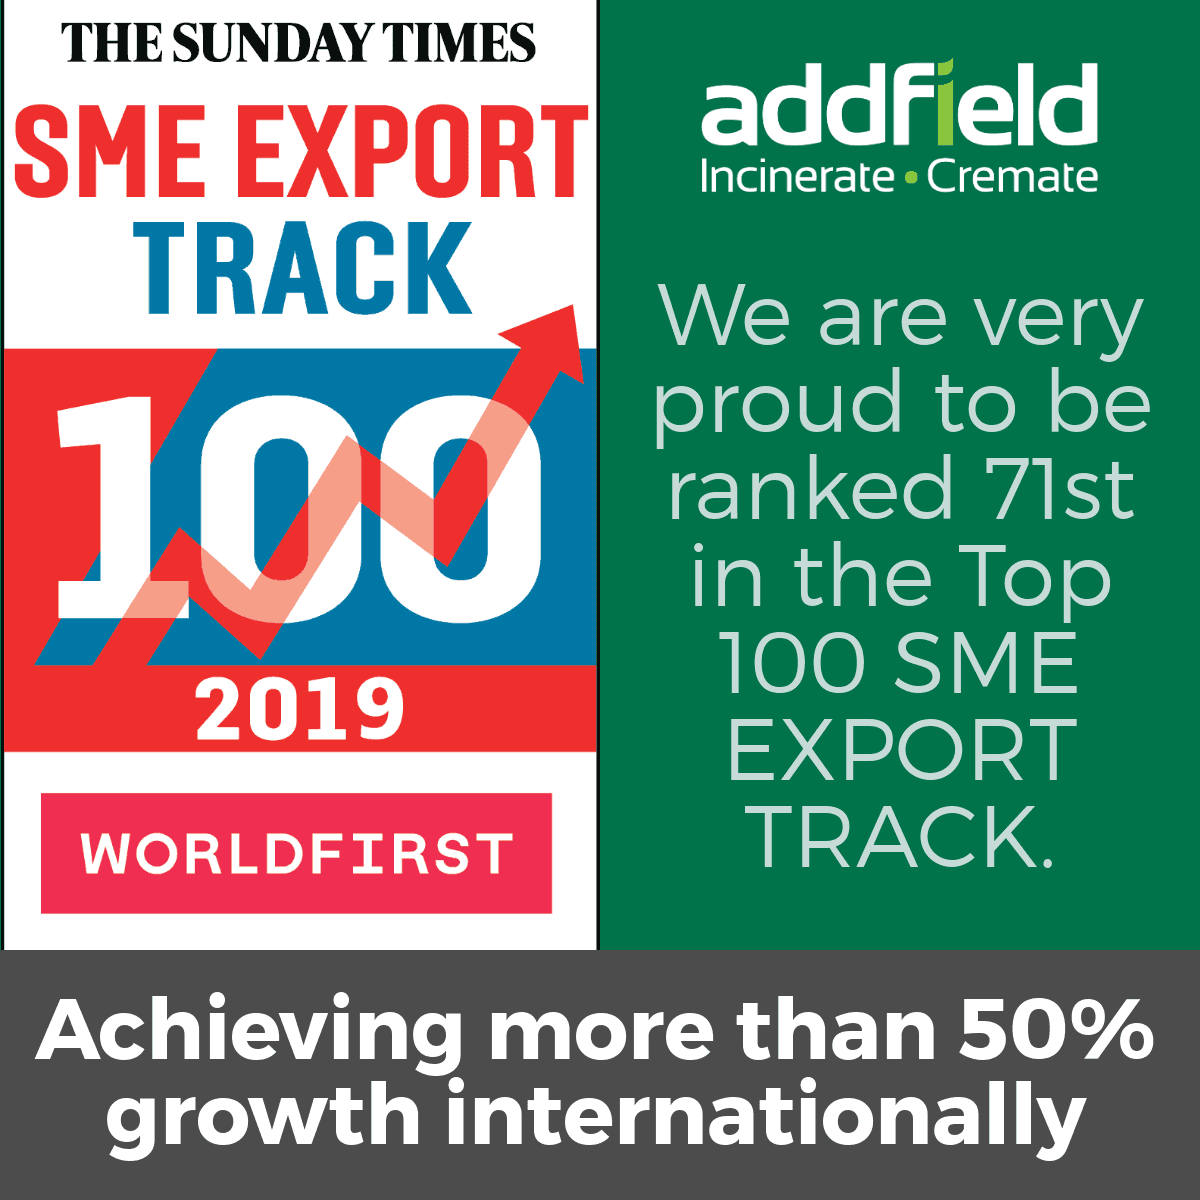 Addfield joins SME Export Track 100